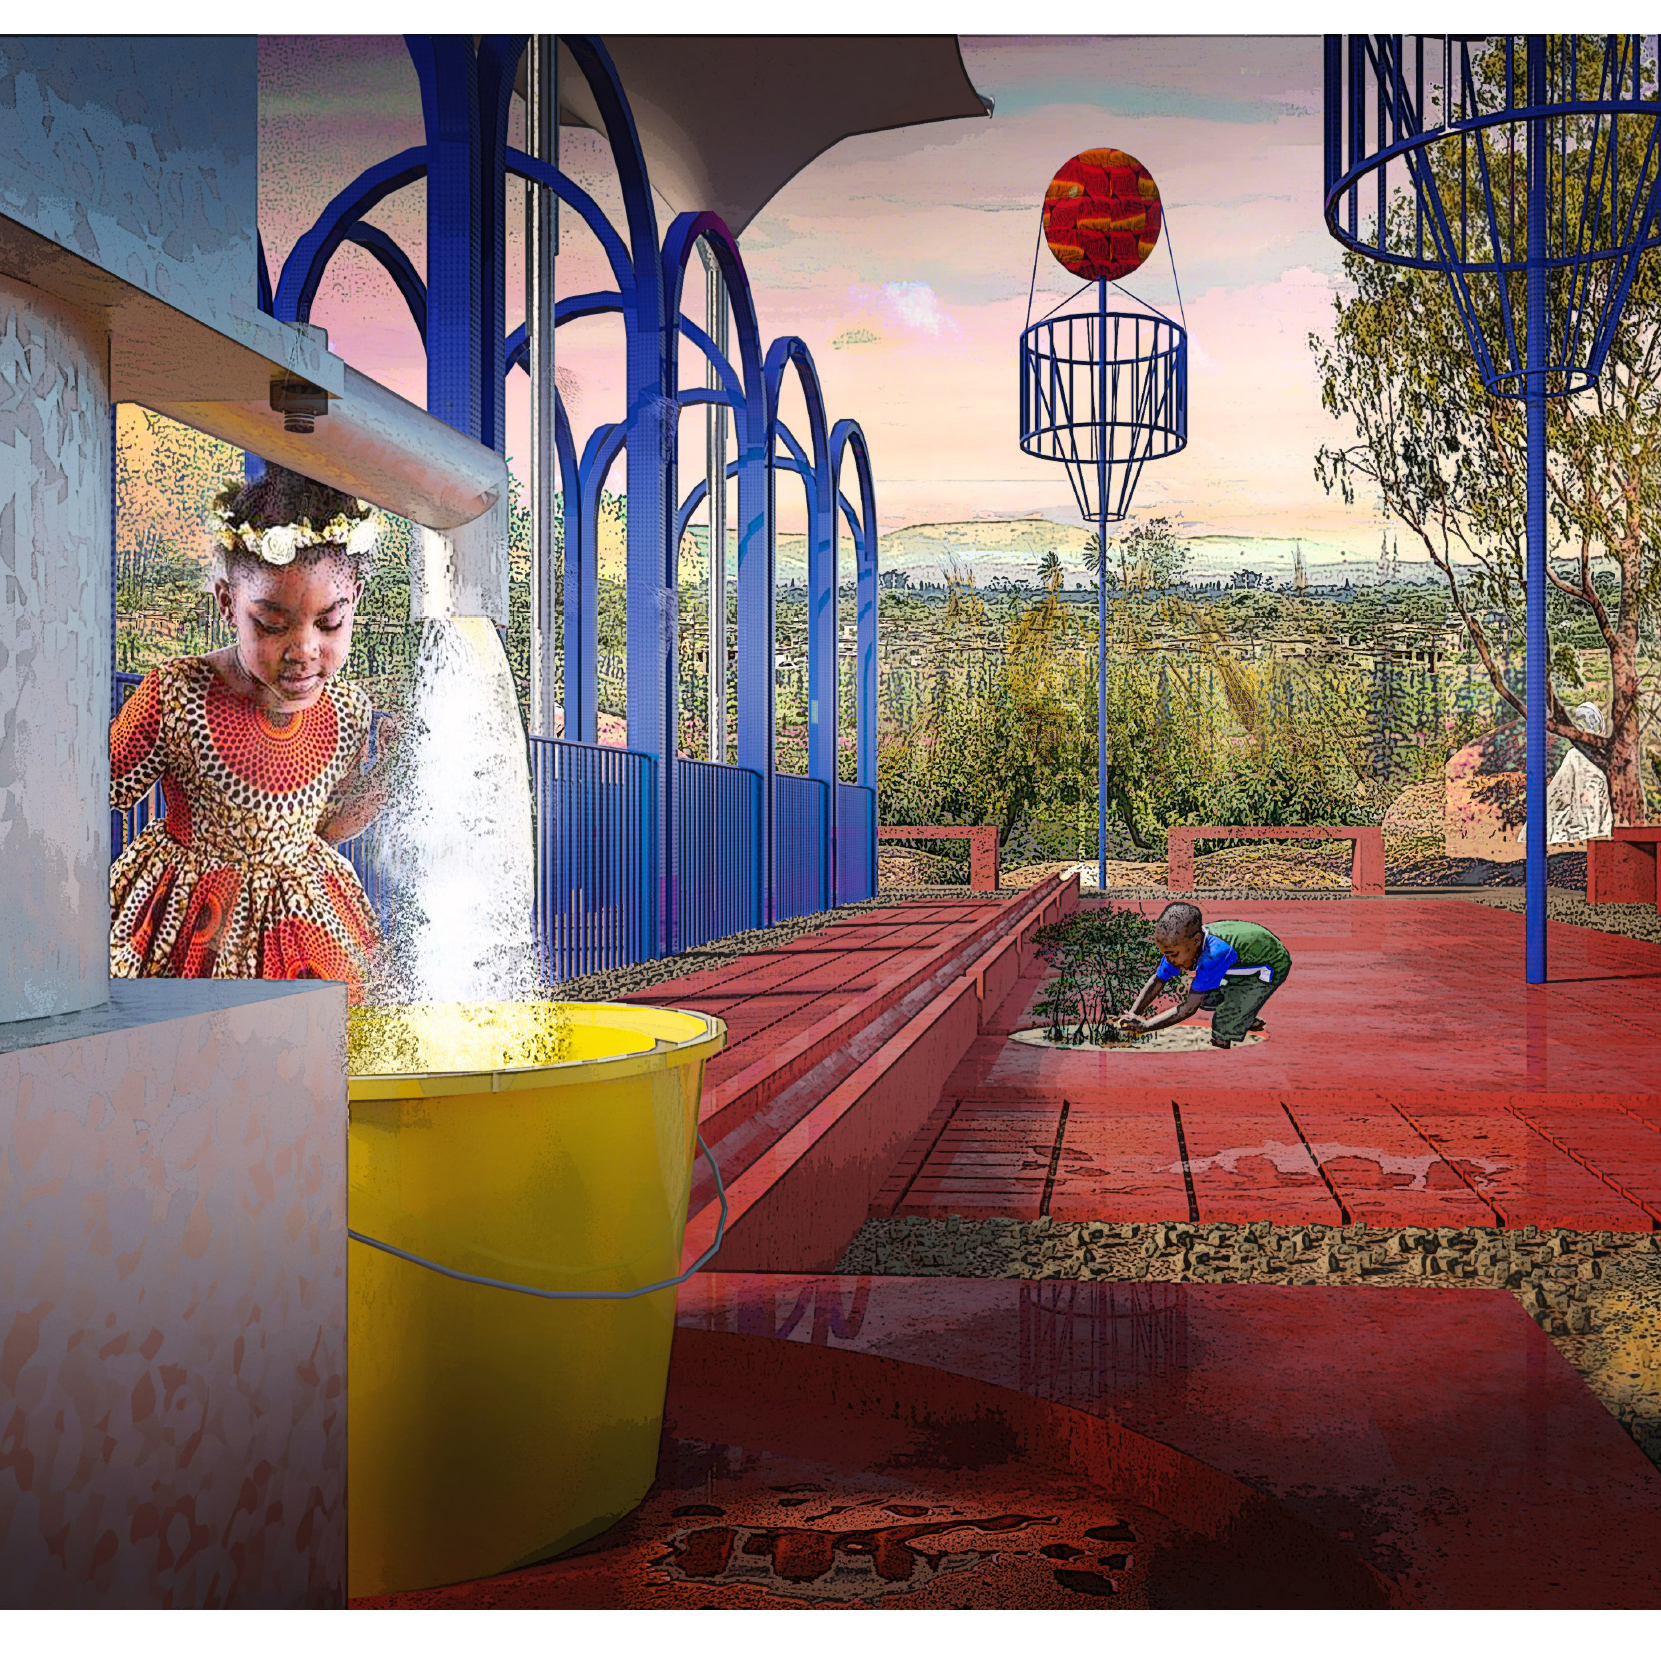 Illustration of girl at water well with blue and red open structure